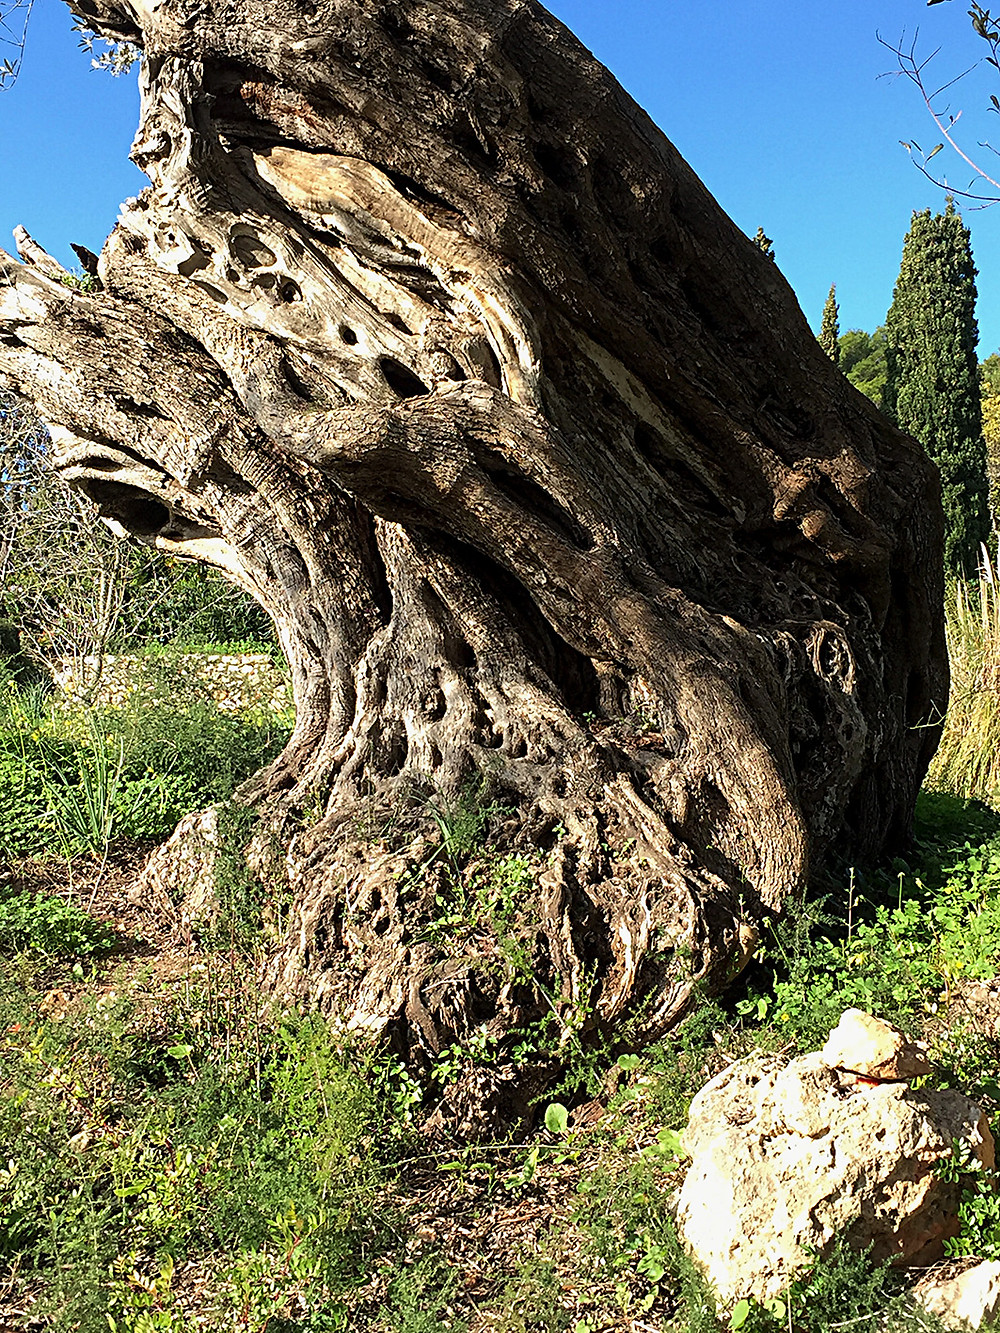 Photograph of ancient olive tree, leaning heavily to one side showing broken and interwoven branches and gnarled roots stretching into the ground. #ancientolivetree #oldtree #olivetree #gnarled #knotted